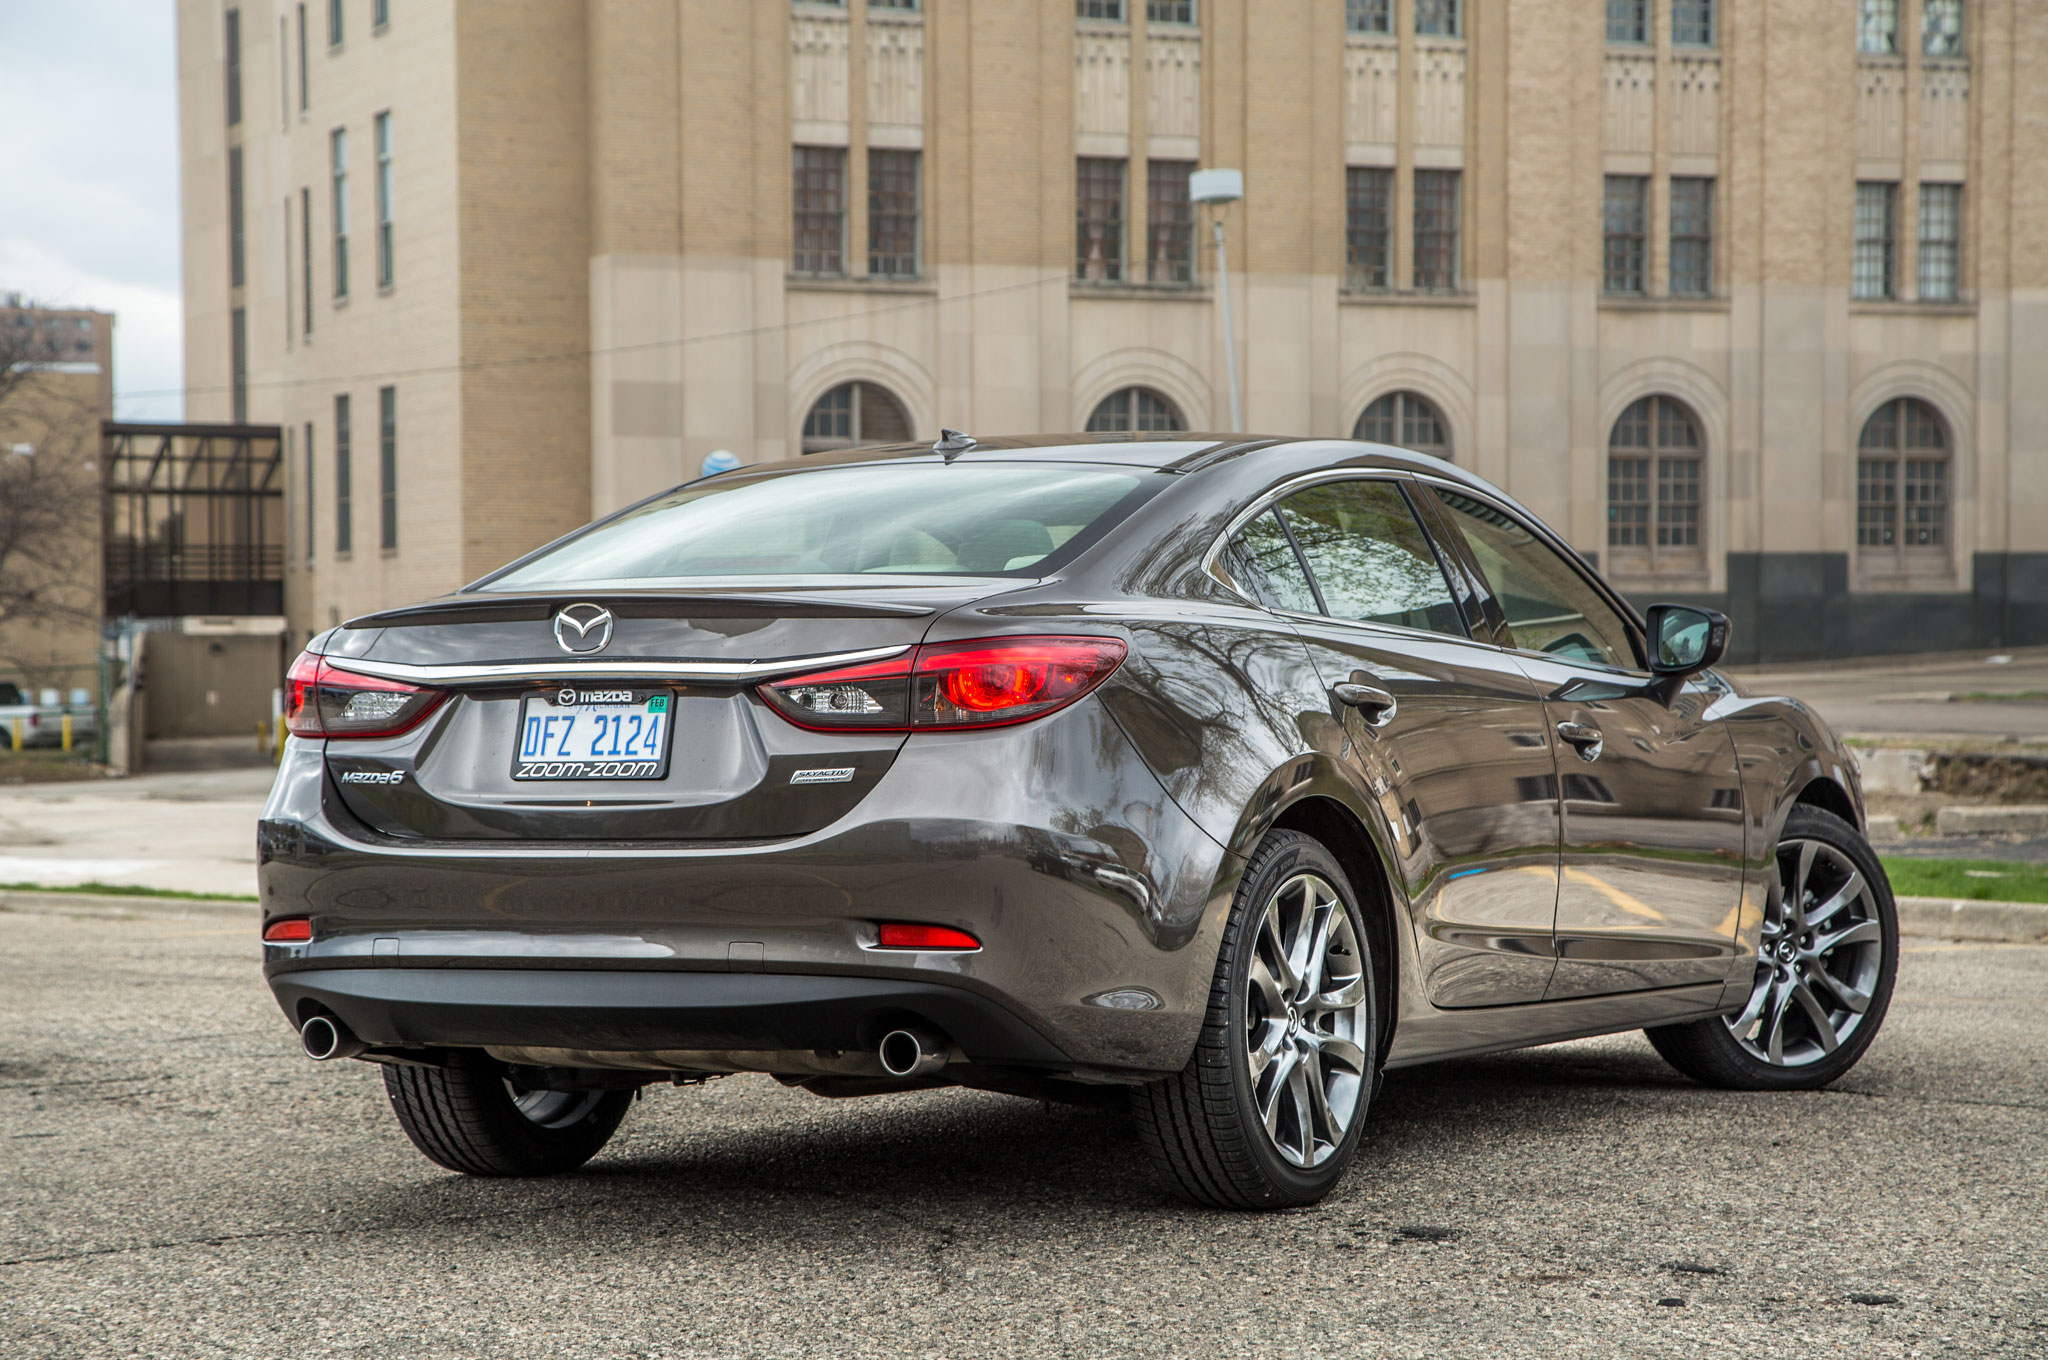 ... acknowledge the Mazda6's relative light weight, which means it has a  bit less insulation than the competition, which, in the end, means more  road noise.